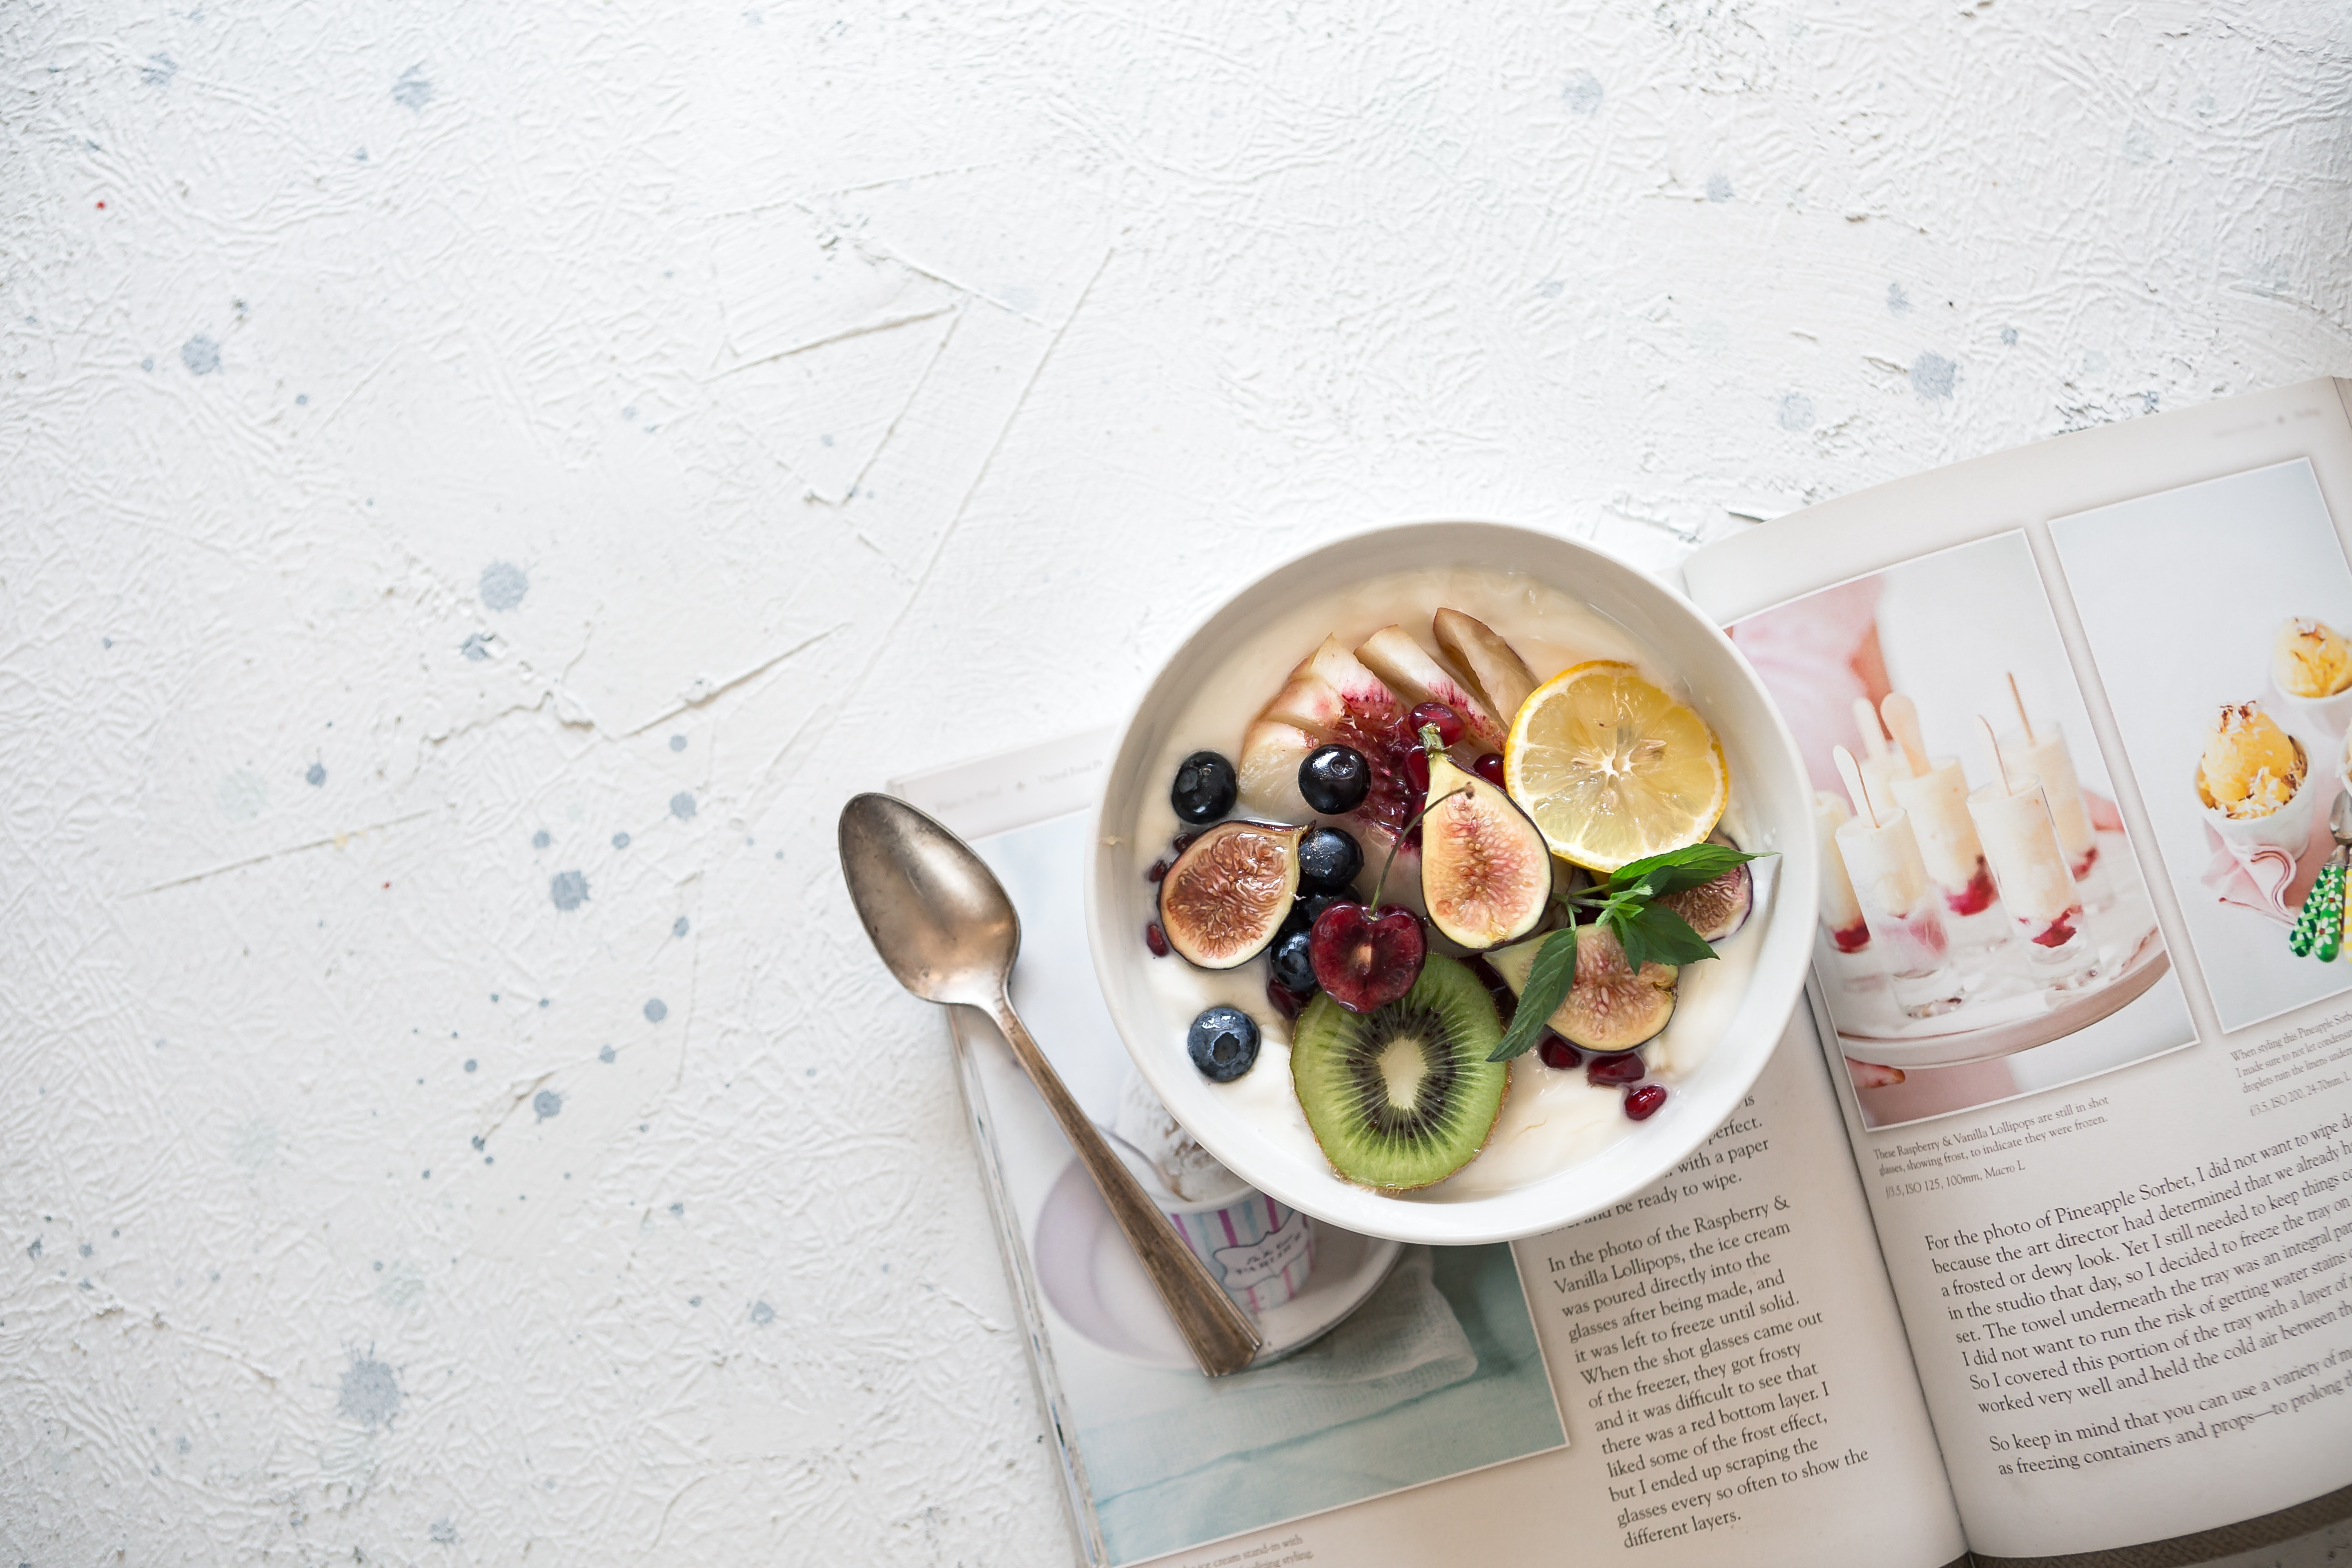 Health-focused cookbook is a new fundraiser for international ABC students.